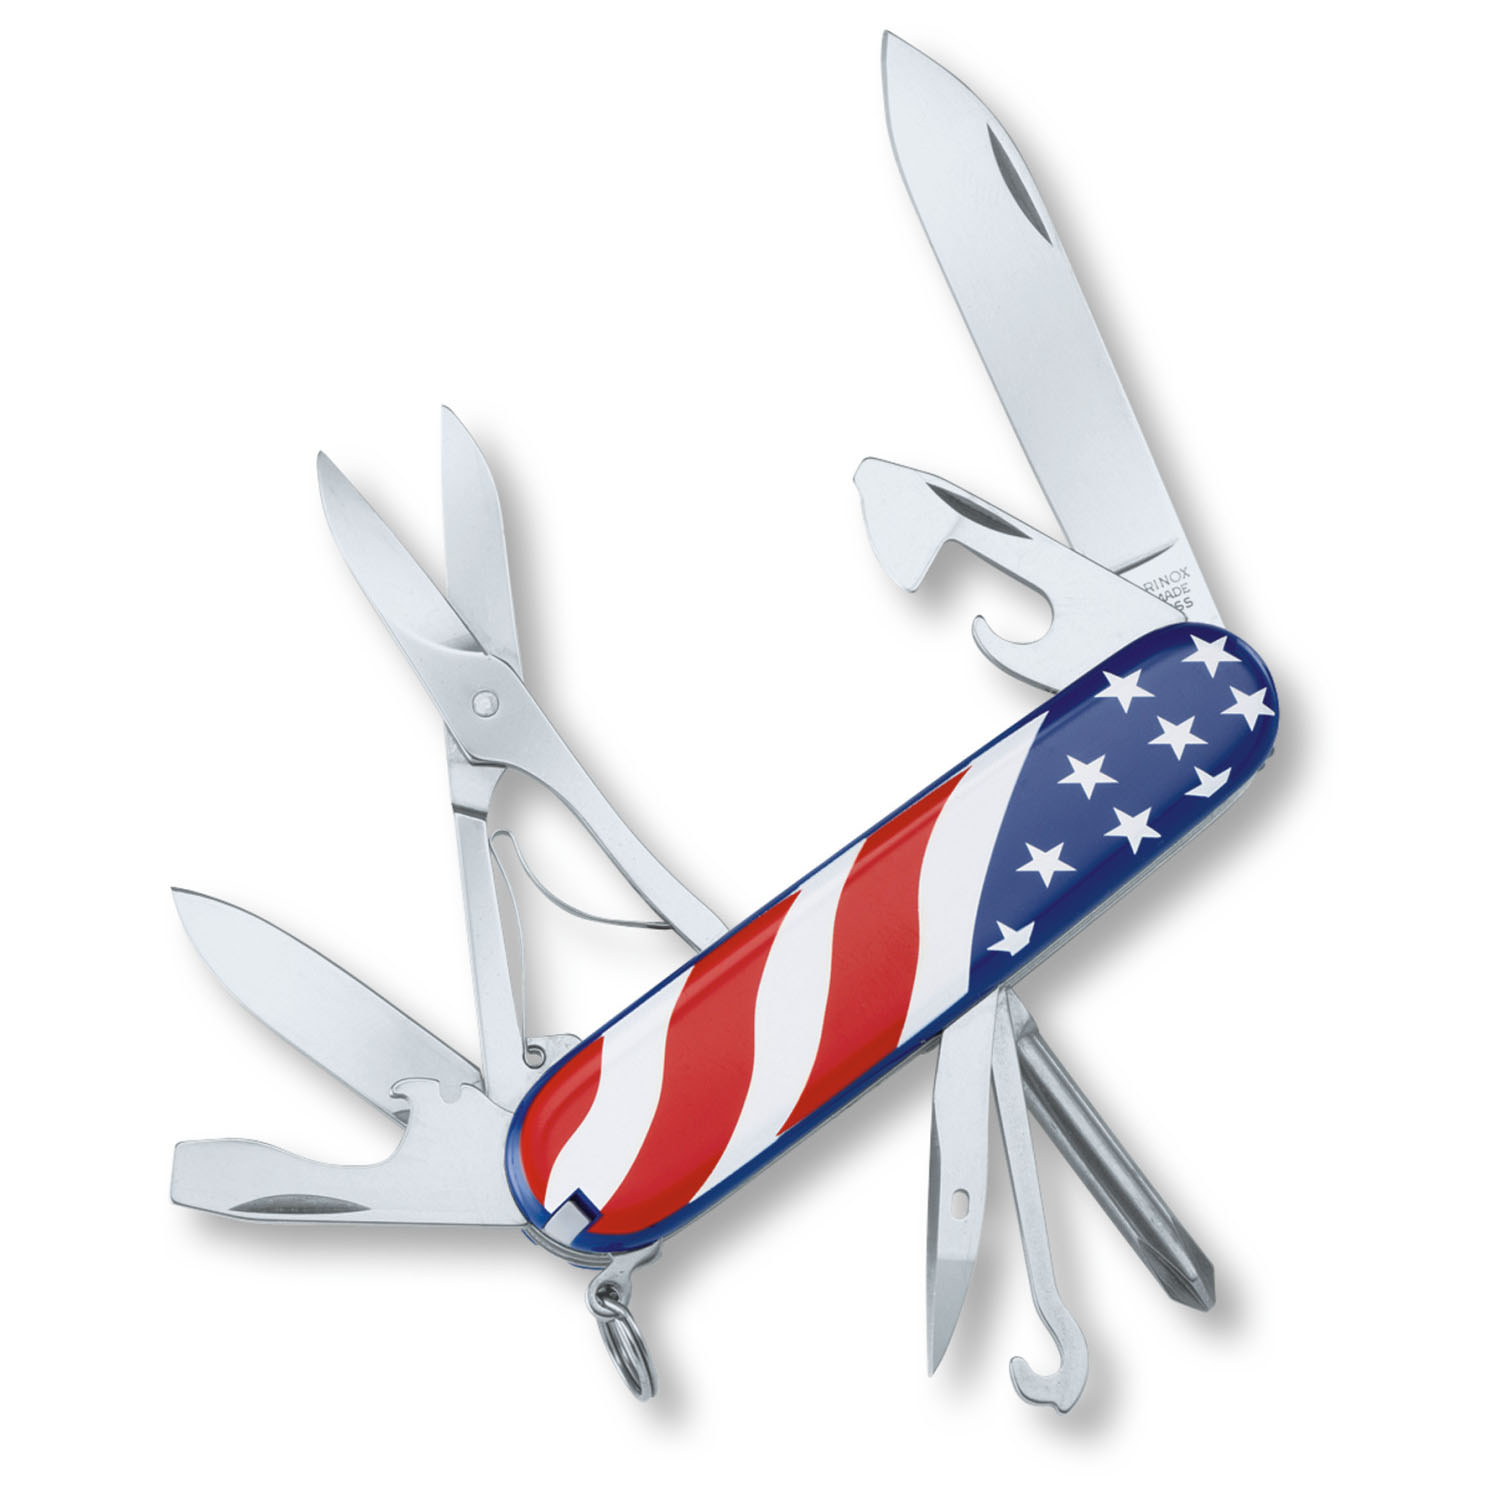 Victorinox Swiss Army American Flag Super Tinker Knife